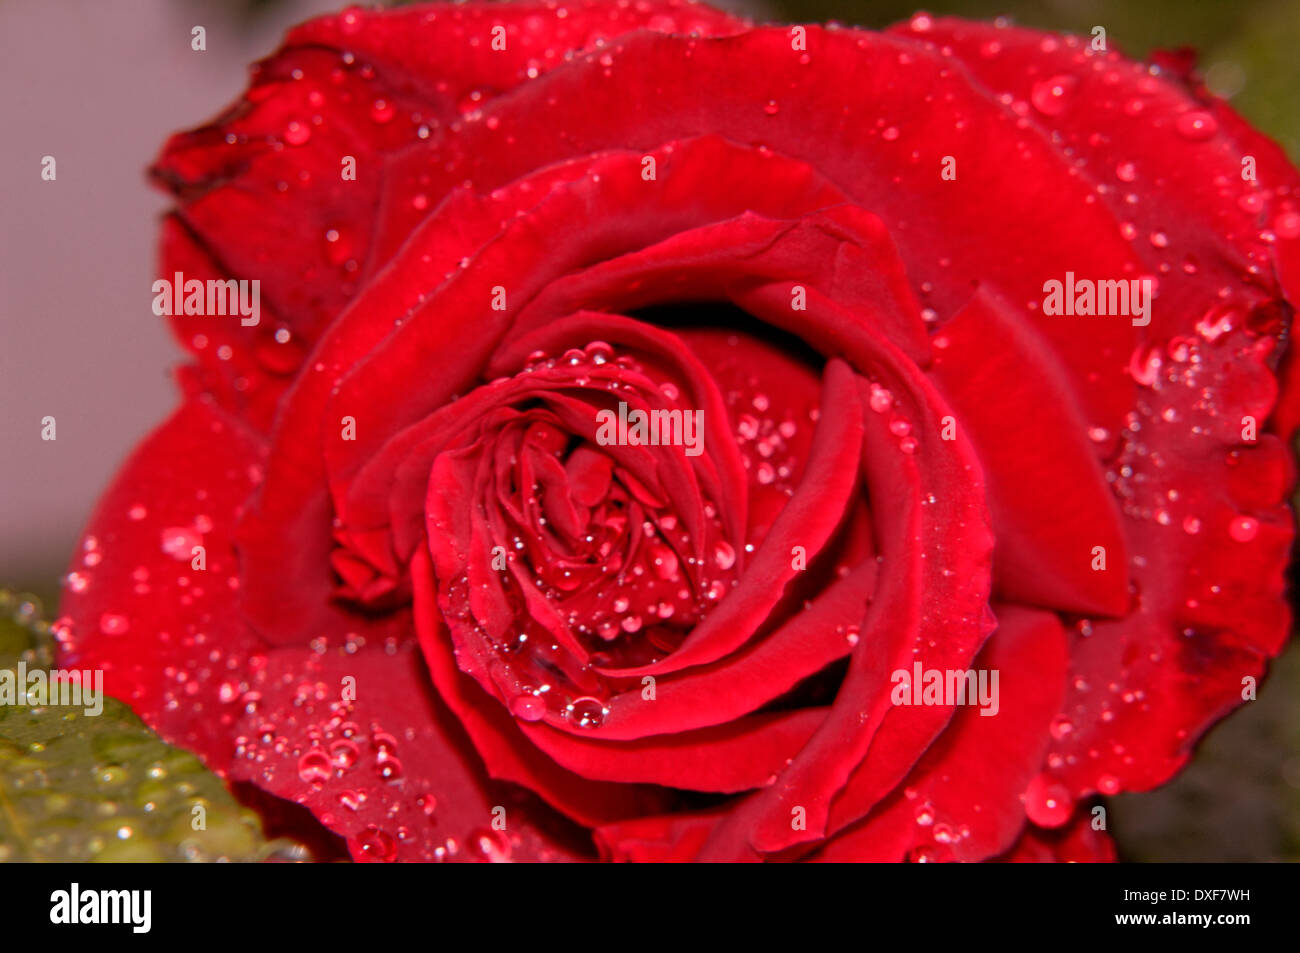 Red rose in the rain - Stock Image